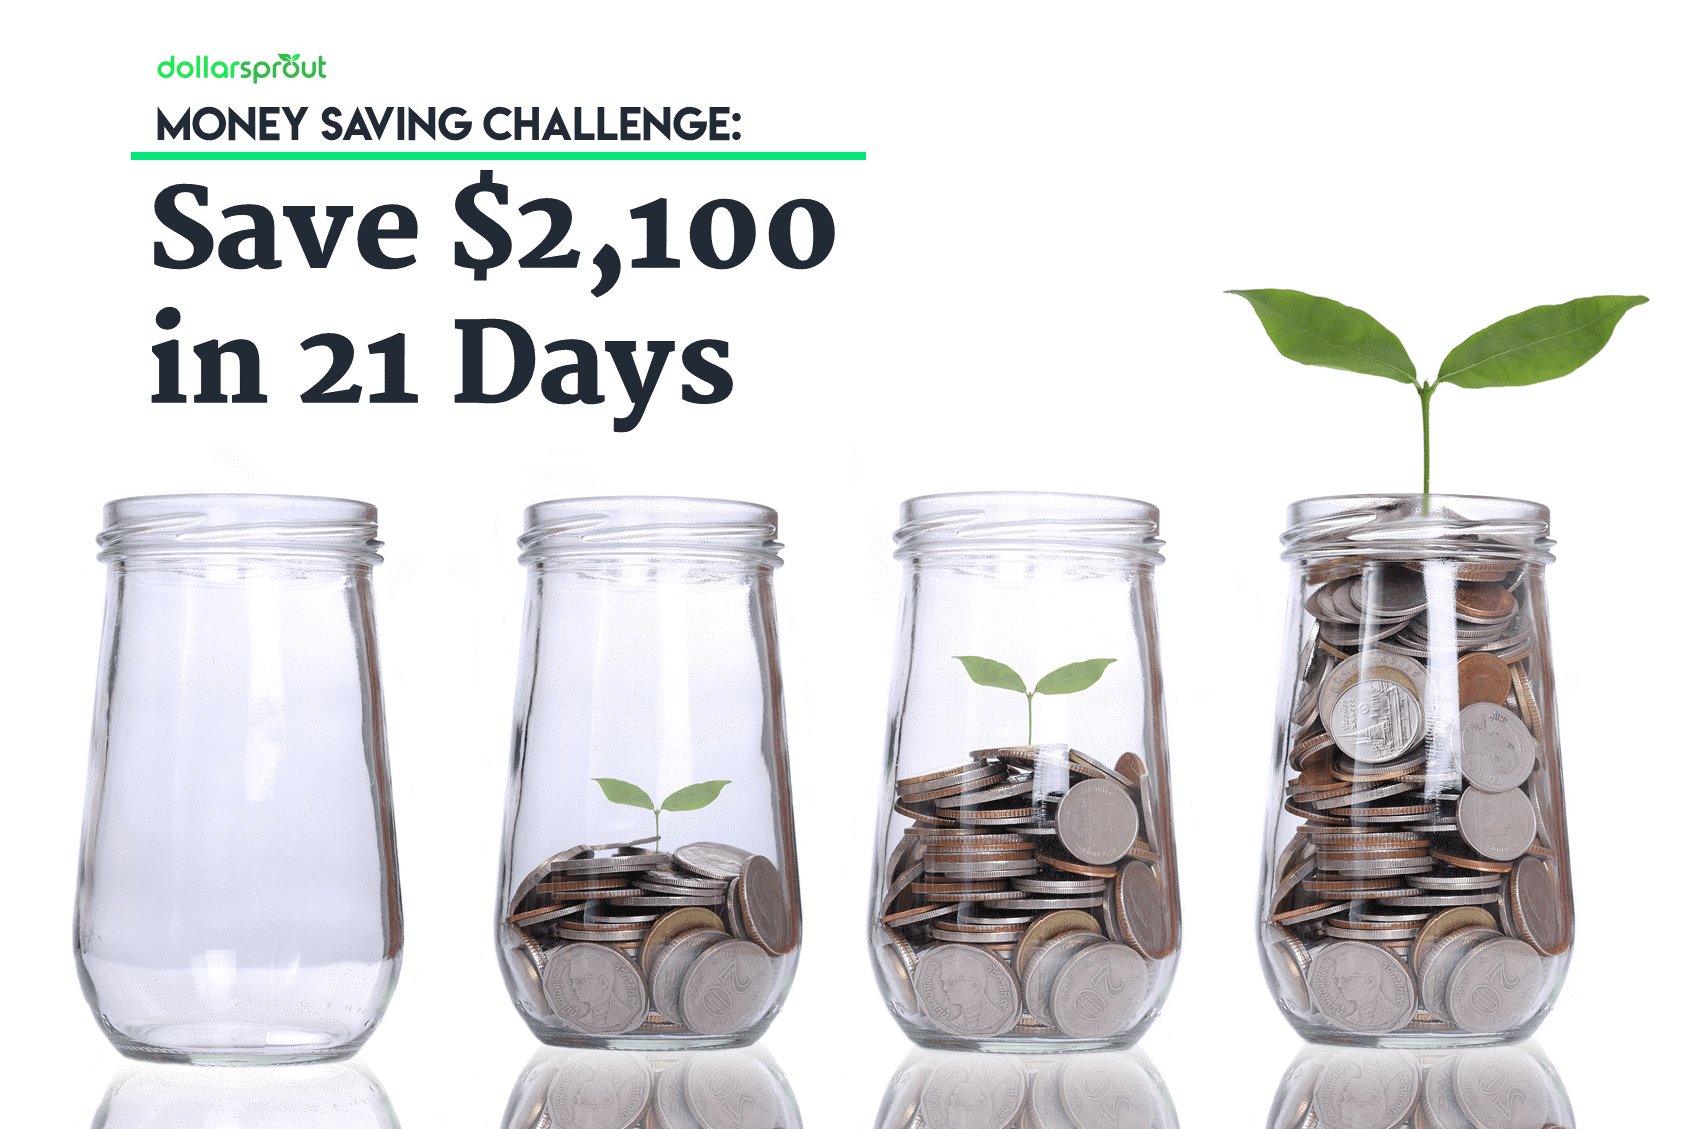 Even if you fall short, participating in the money saver challenge helps you build the habits of a lifelong saver